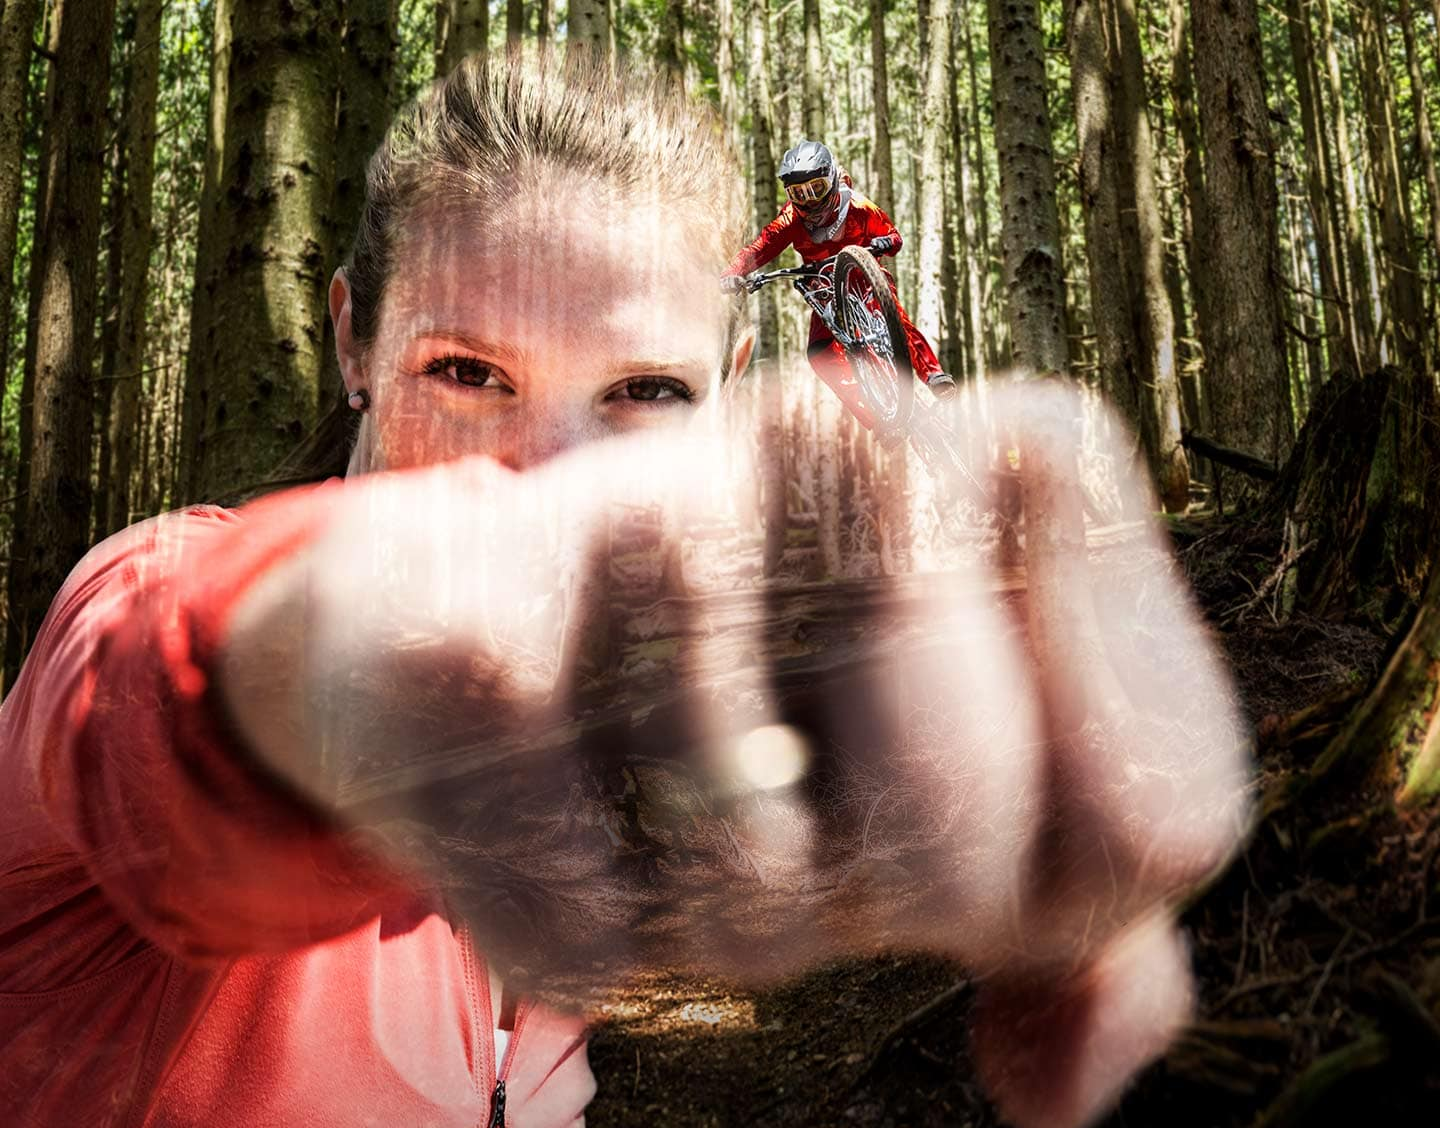 Double Exposure Portrait of Professional Downhill Mountain Biker  Vaea Verbeeck Jumping in the woods Photographer Rod McLean